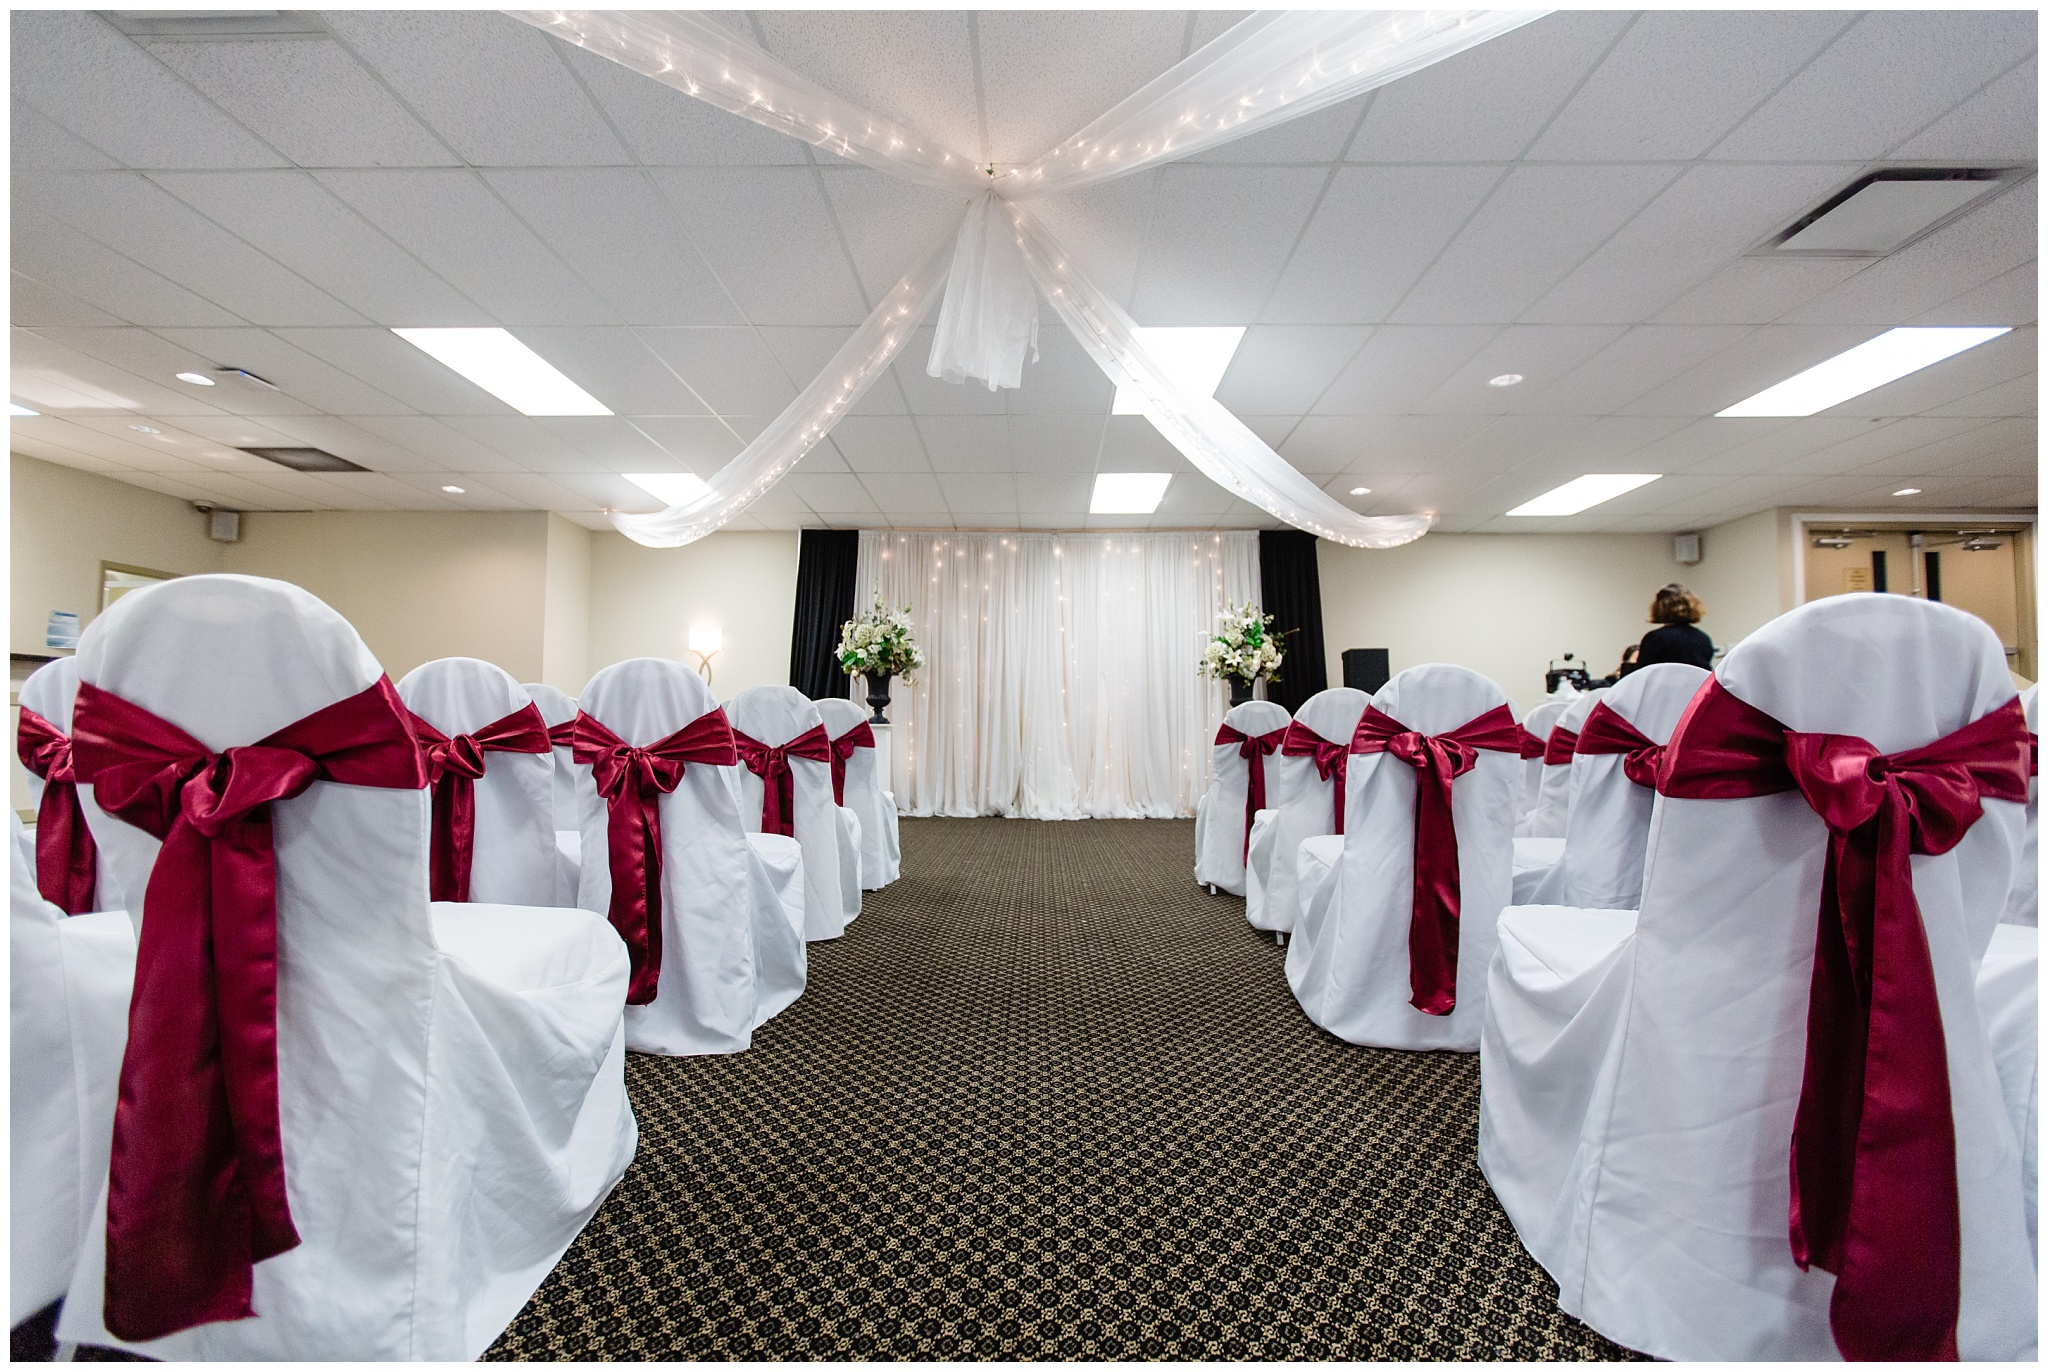 White Rock Intimate Wedding 5 Star Catering Venue Surrey BC Middle Aged Couple_0002.jpg